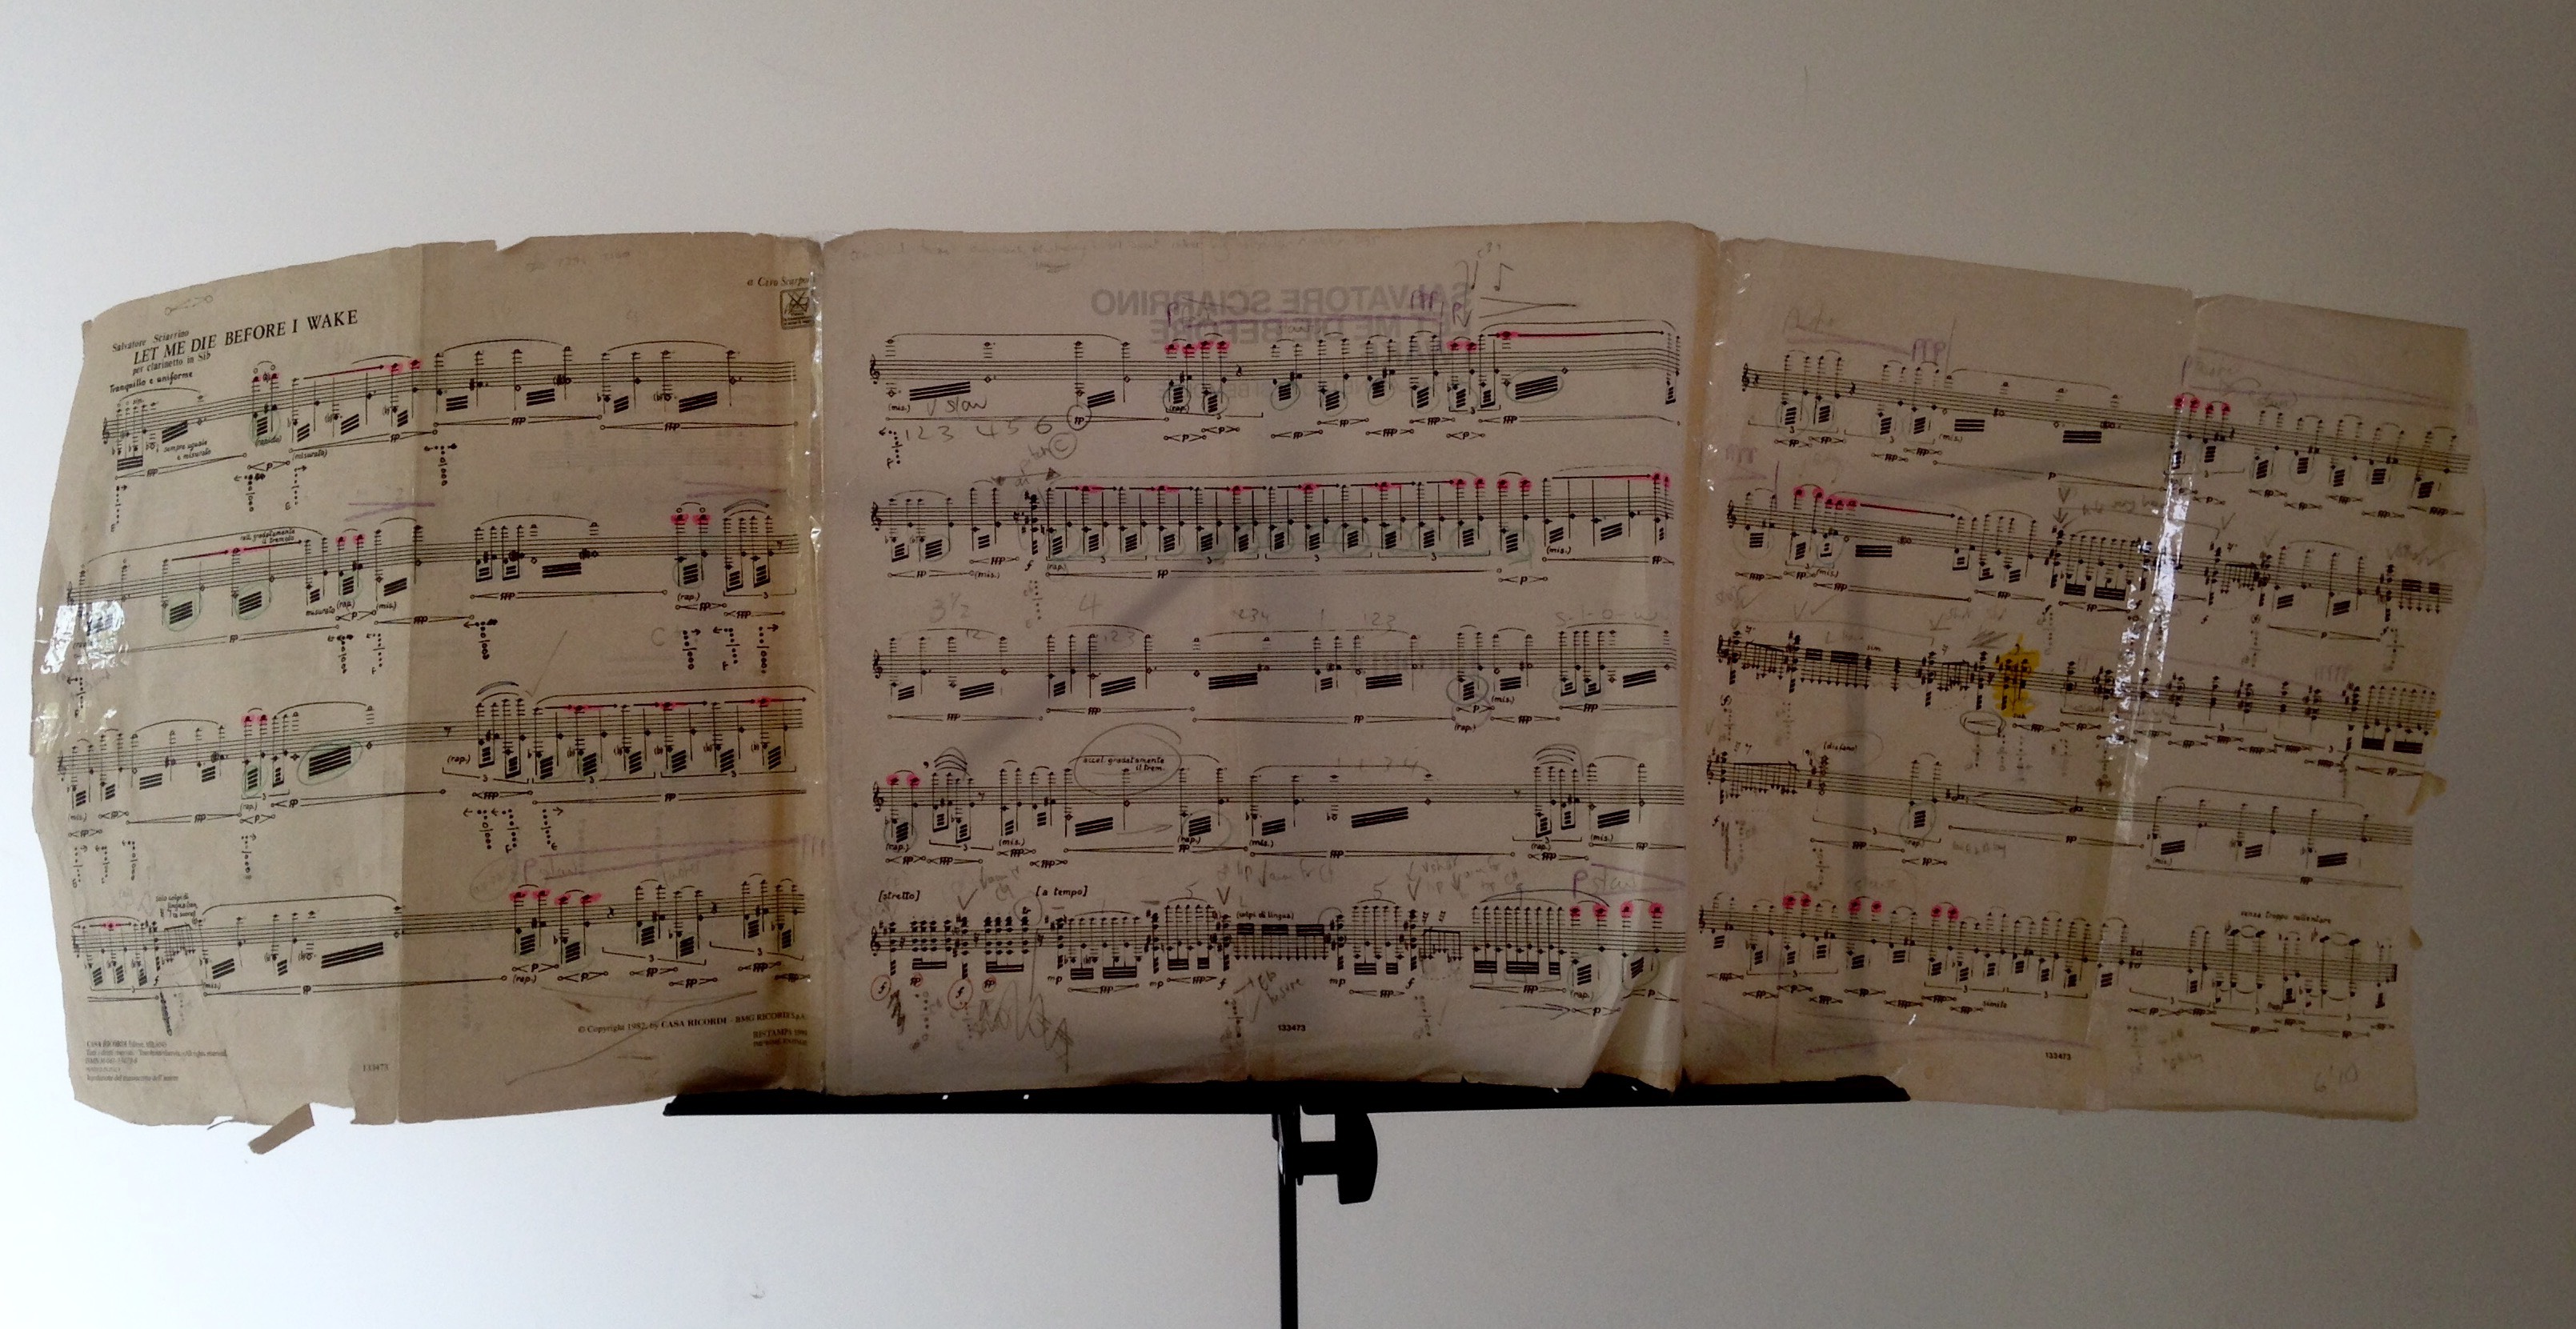 A beautiful landscape:  the well-trodden path through a much-loved score